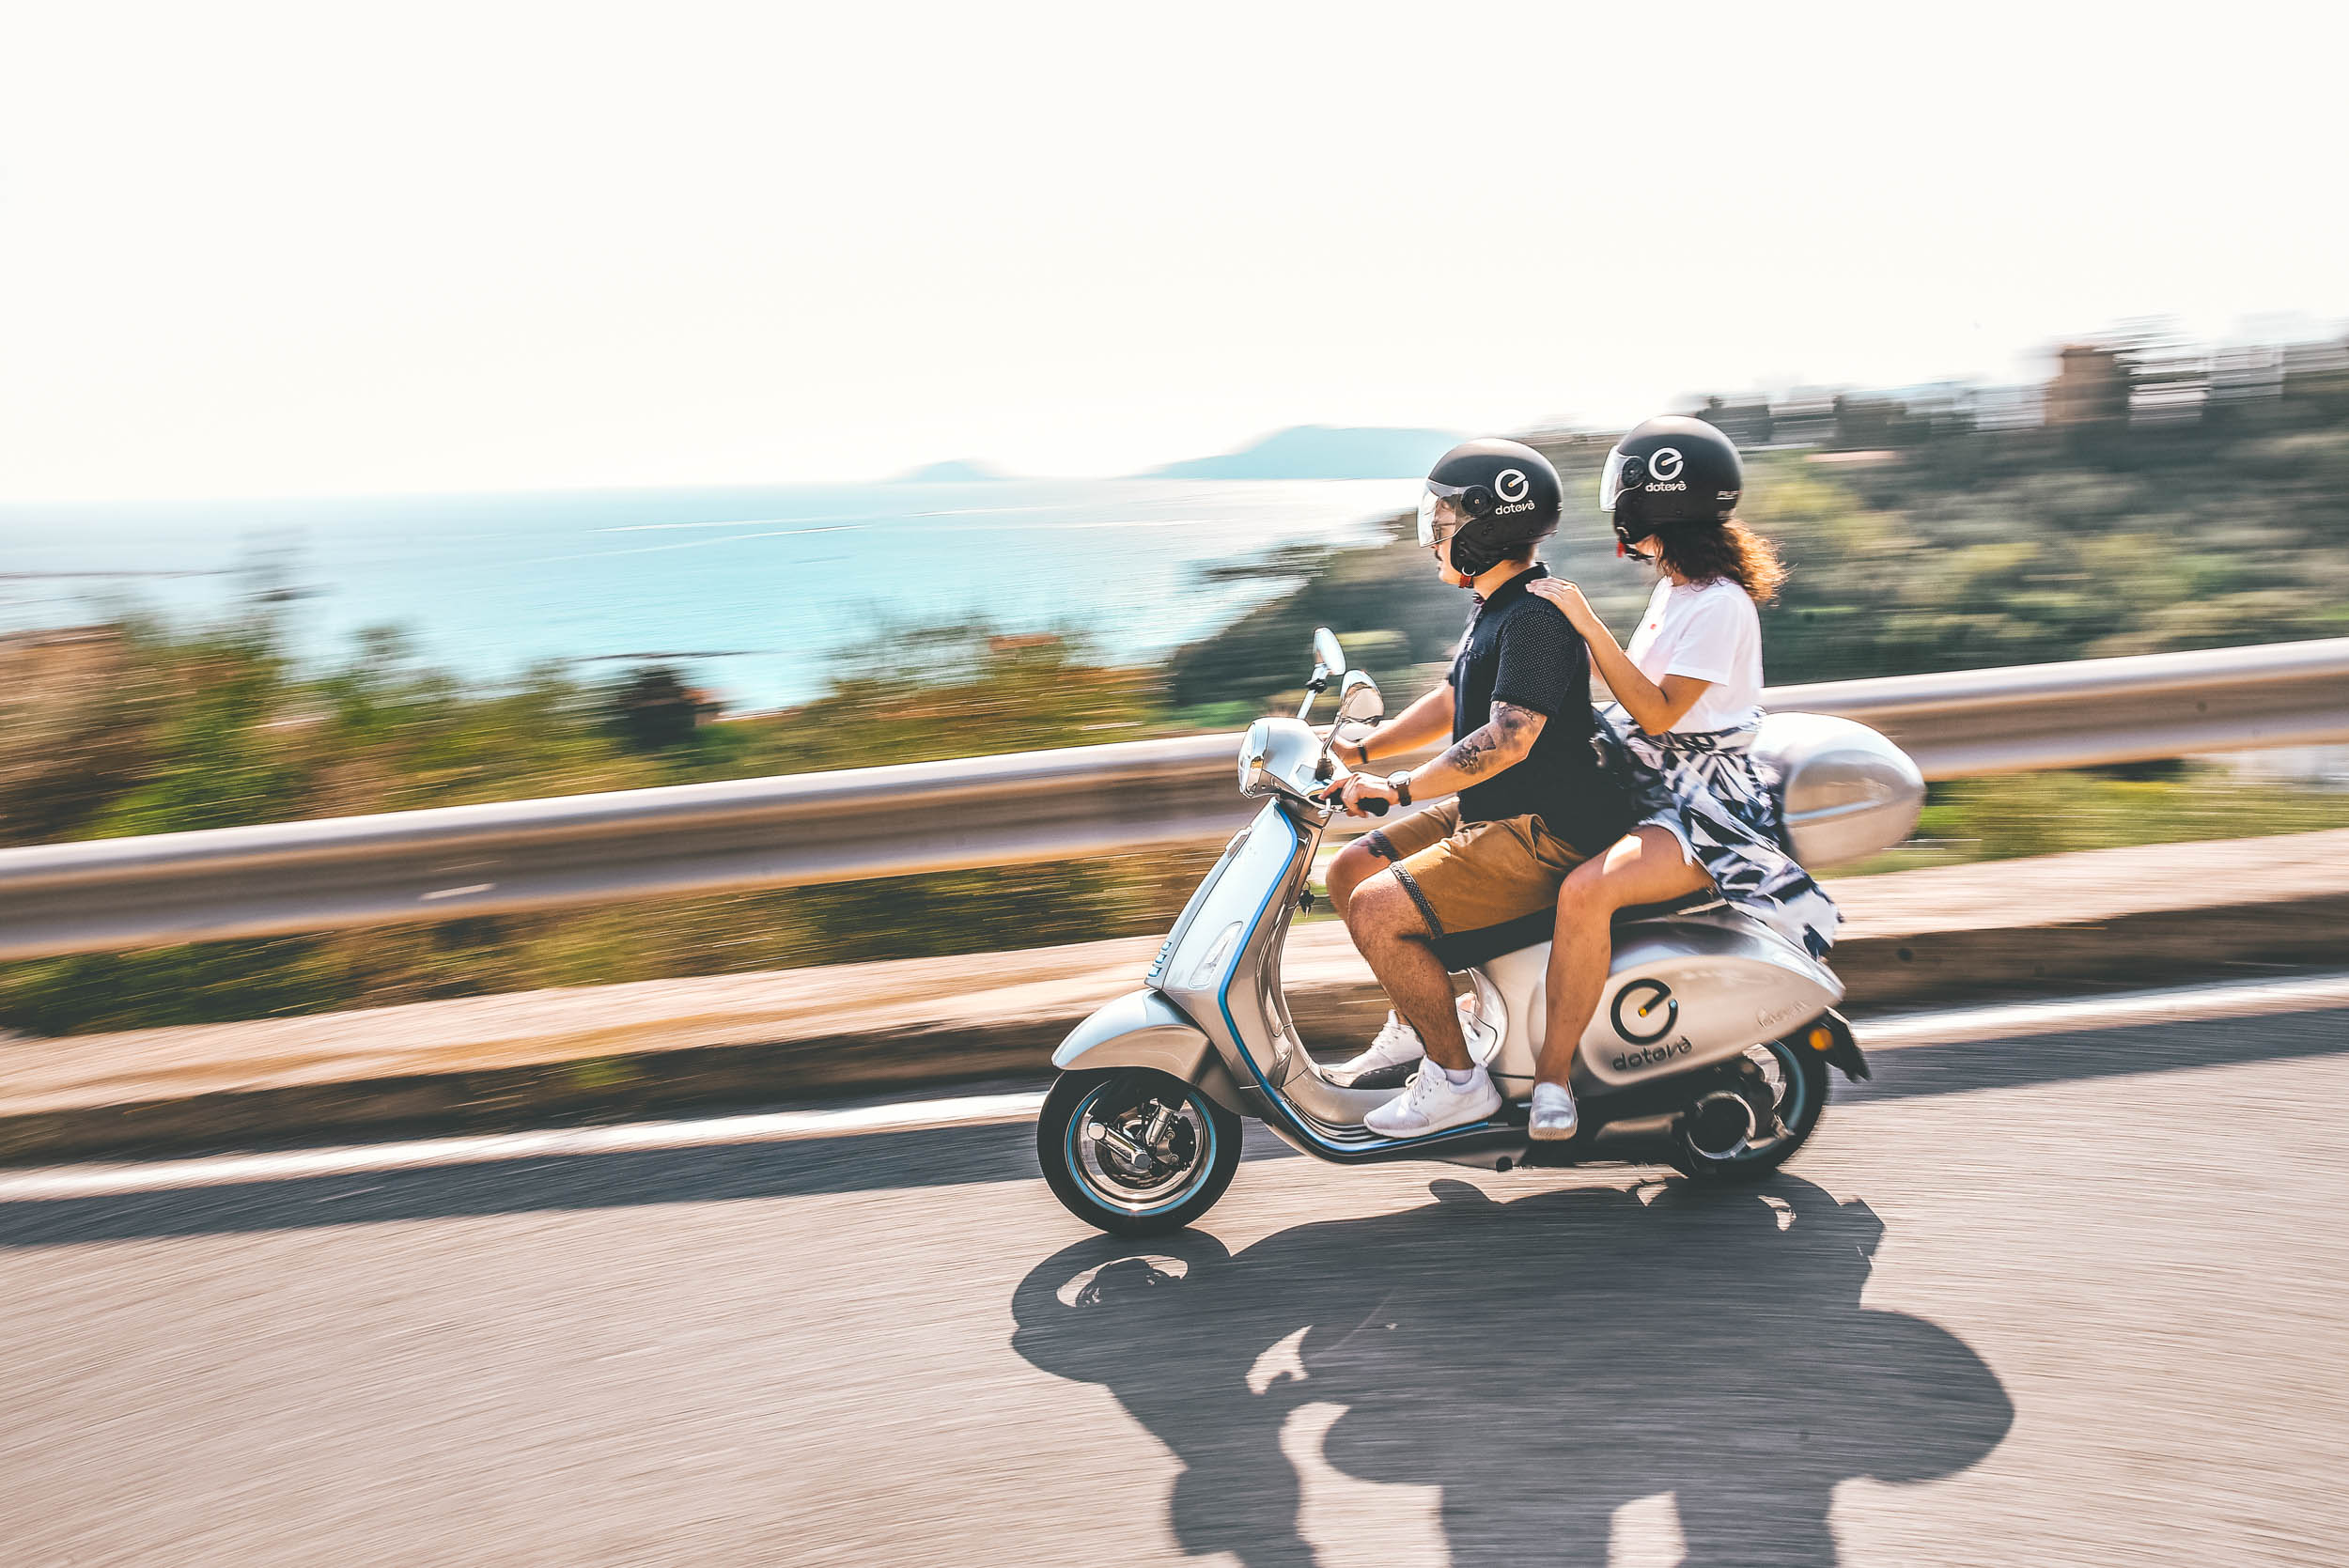 Electric vespa rental